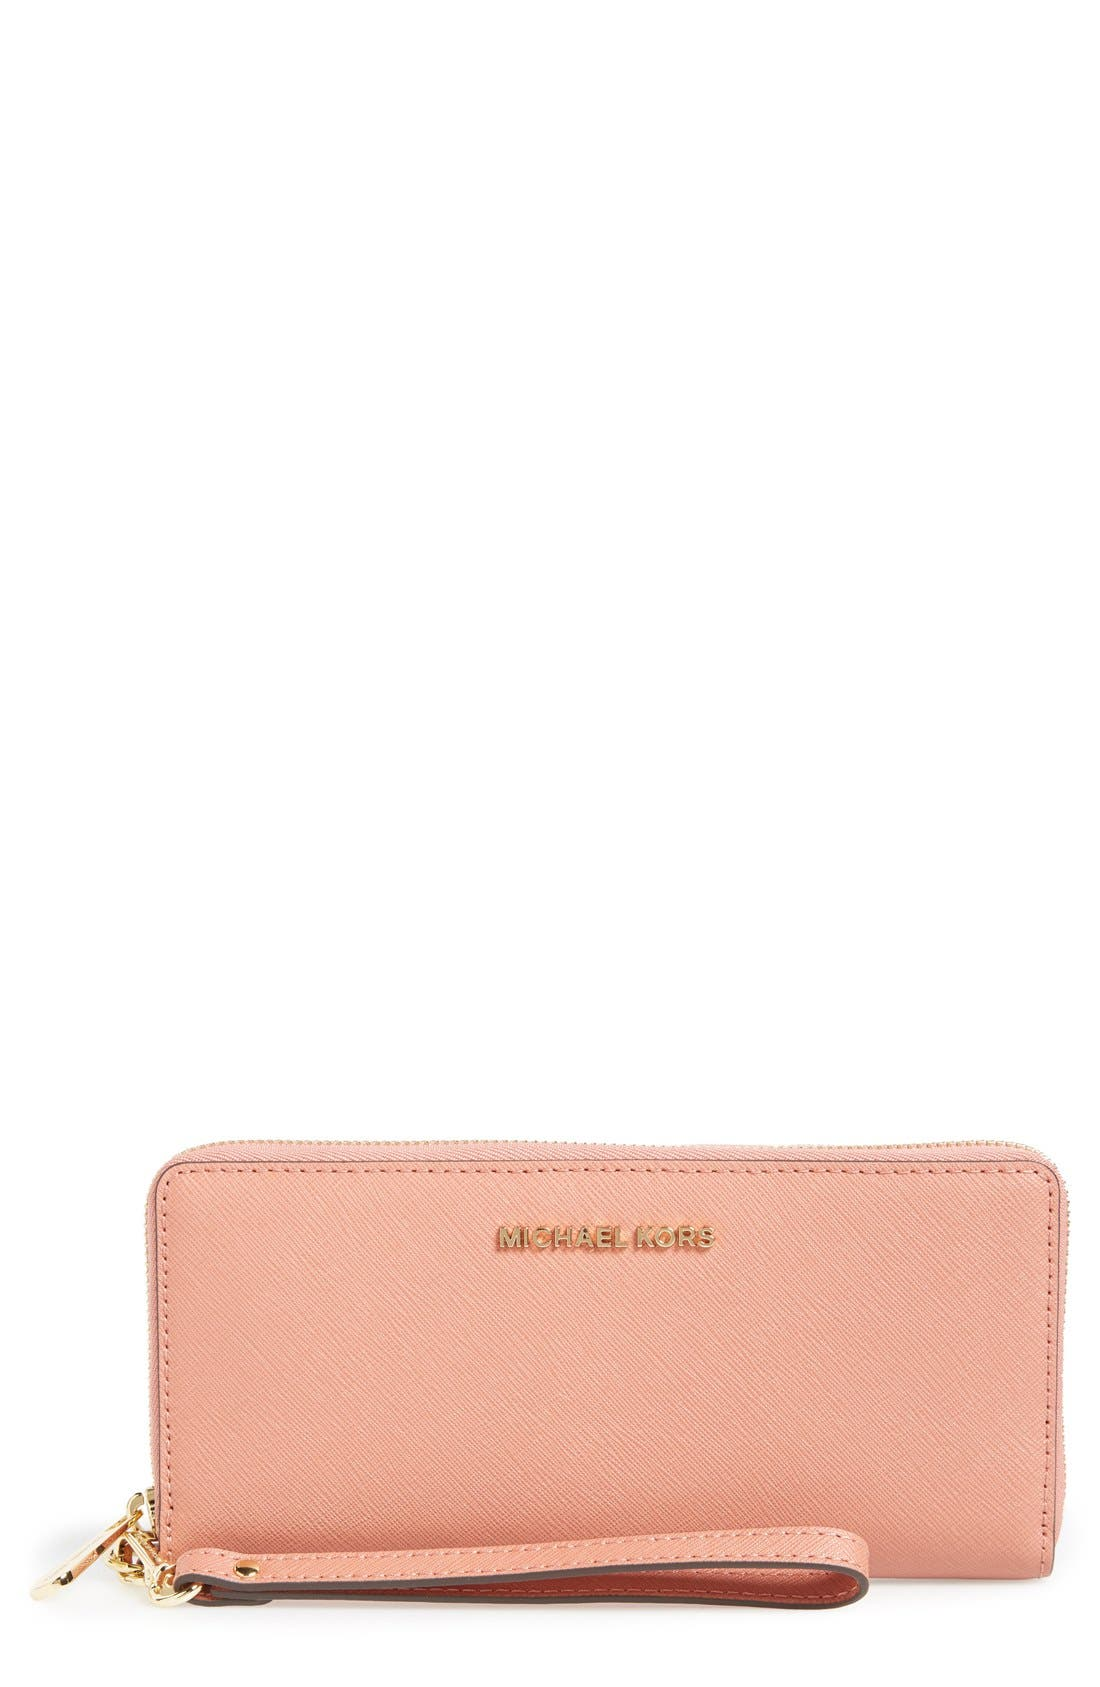 'Jet Set' Leather Travel Wallet,                             Main thumbnail 6, color,